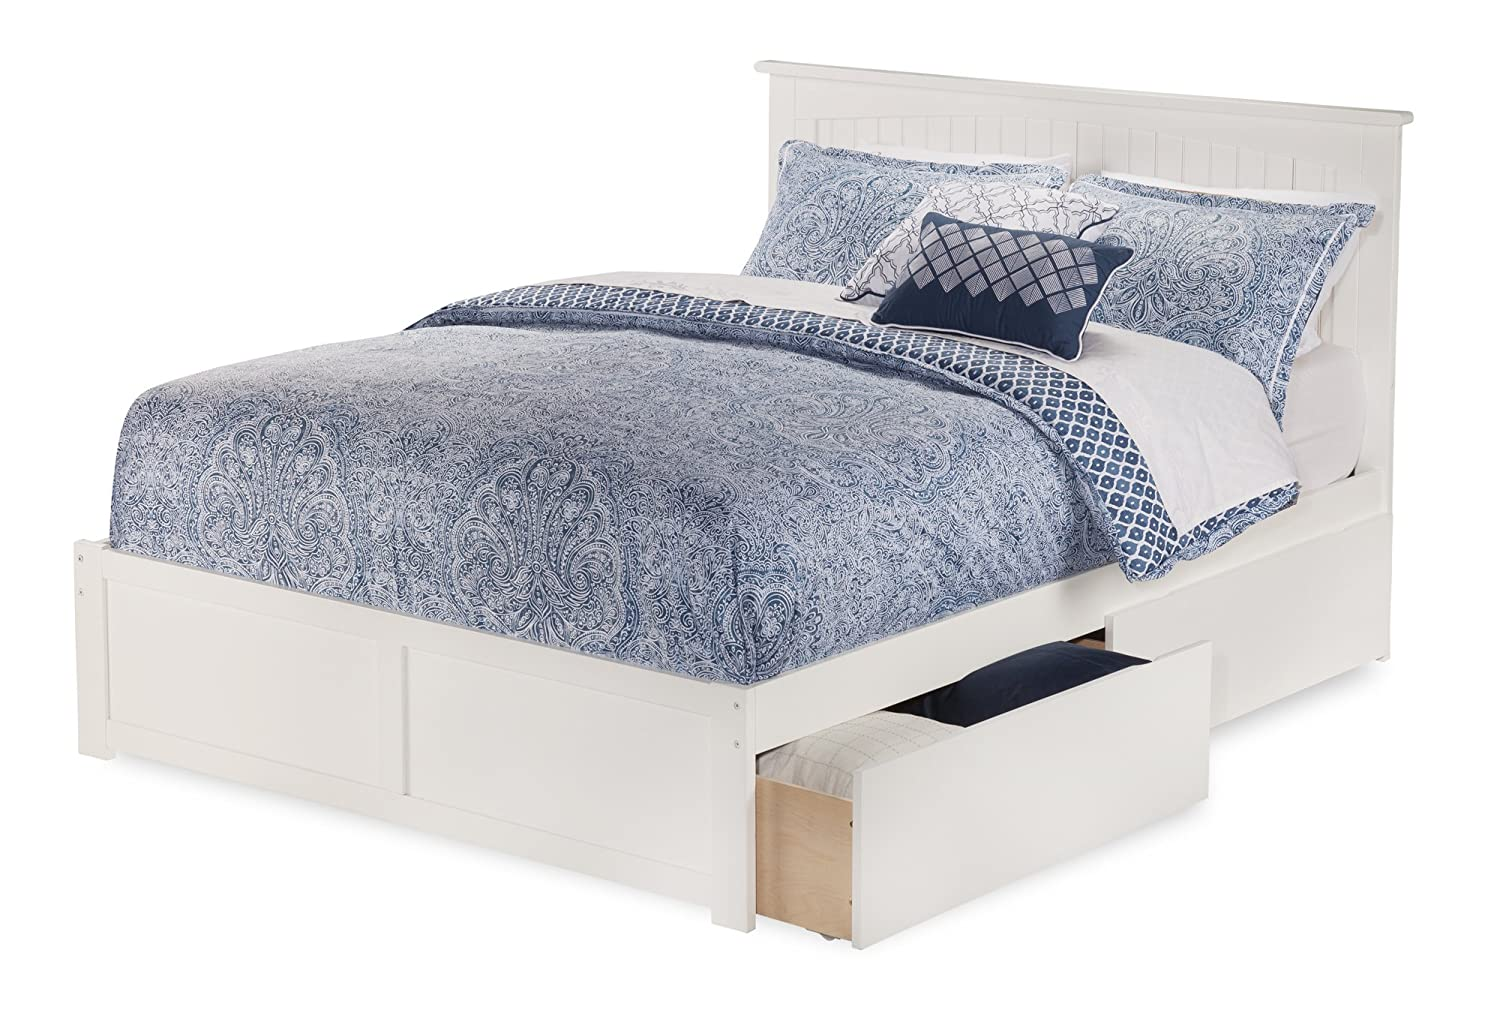 bed king with drawers furniture bb store queen s product